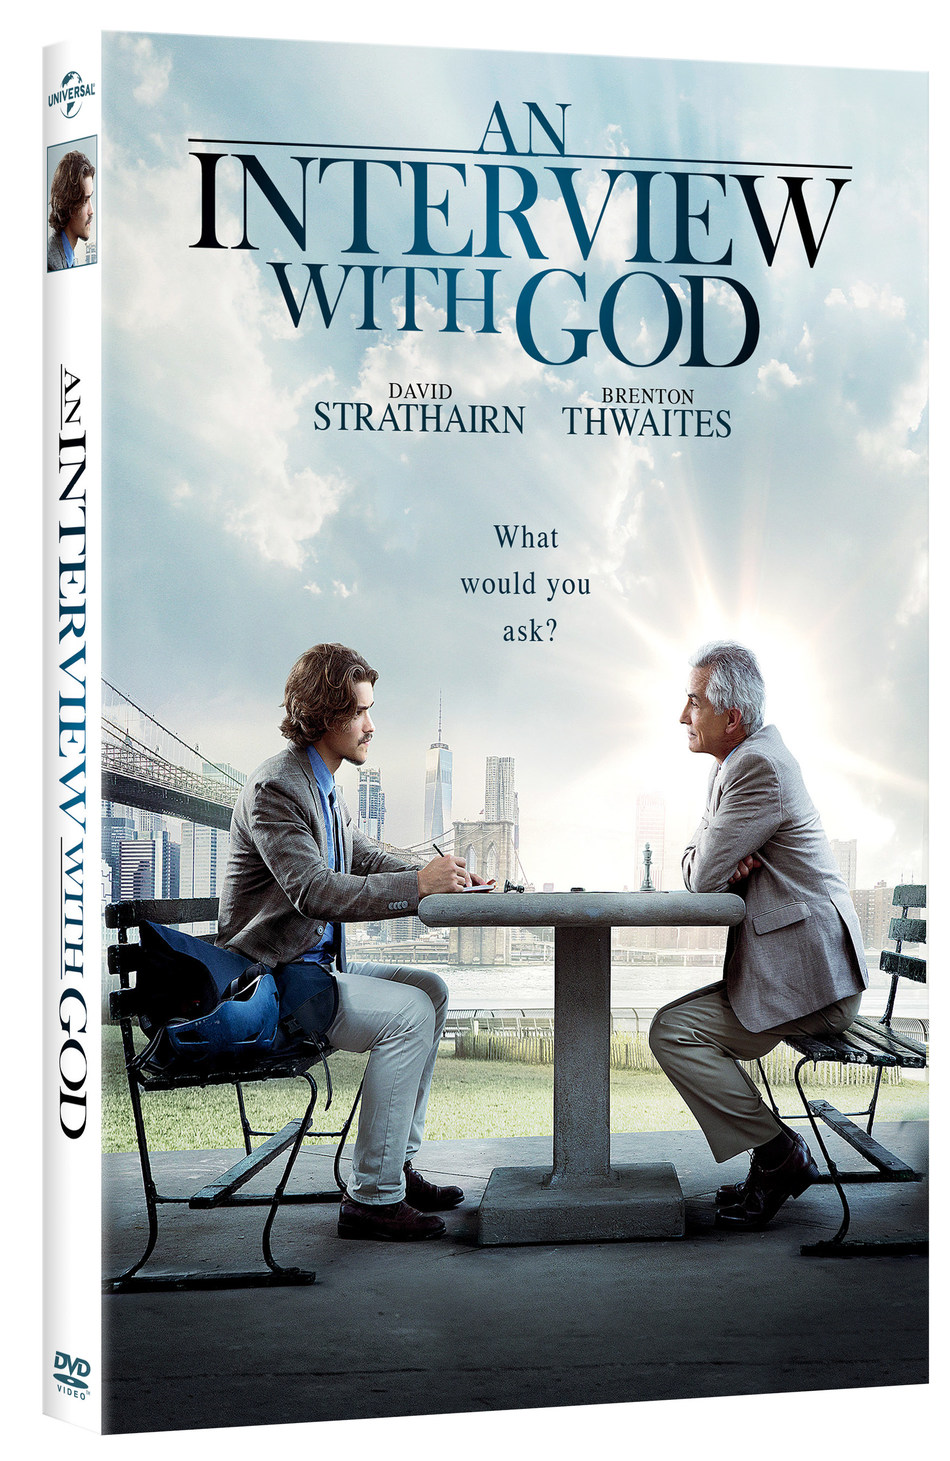 From Universal Pictures Home Entertainment: An Interview with God